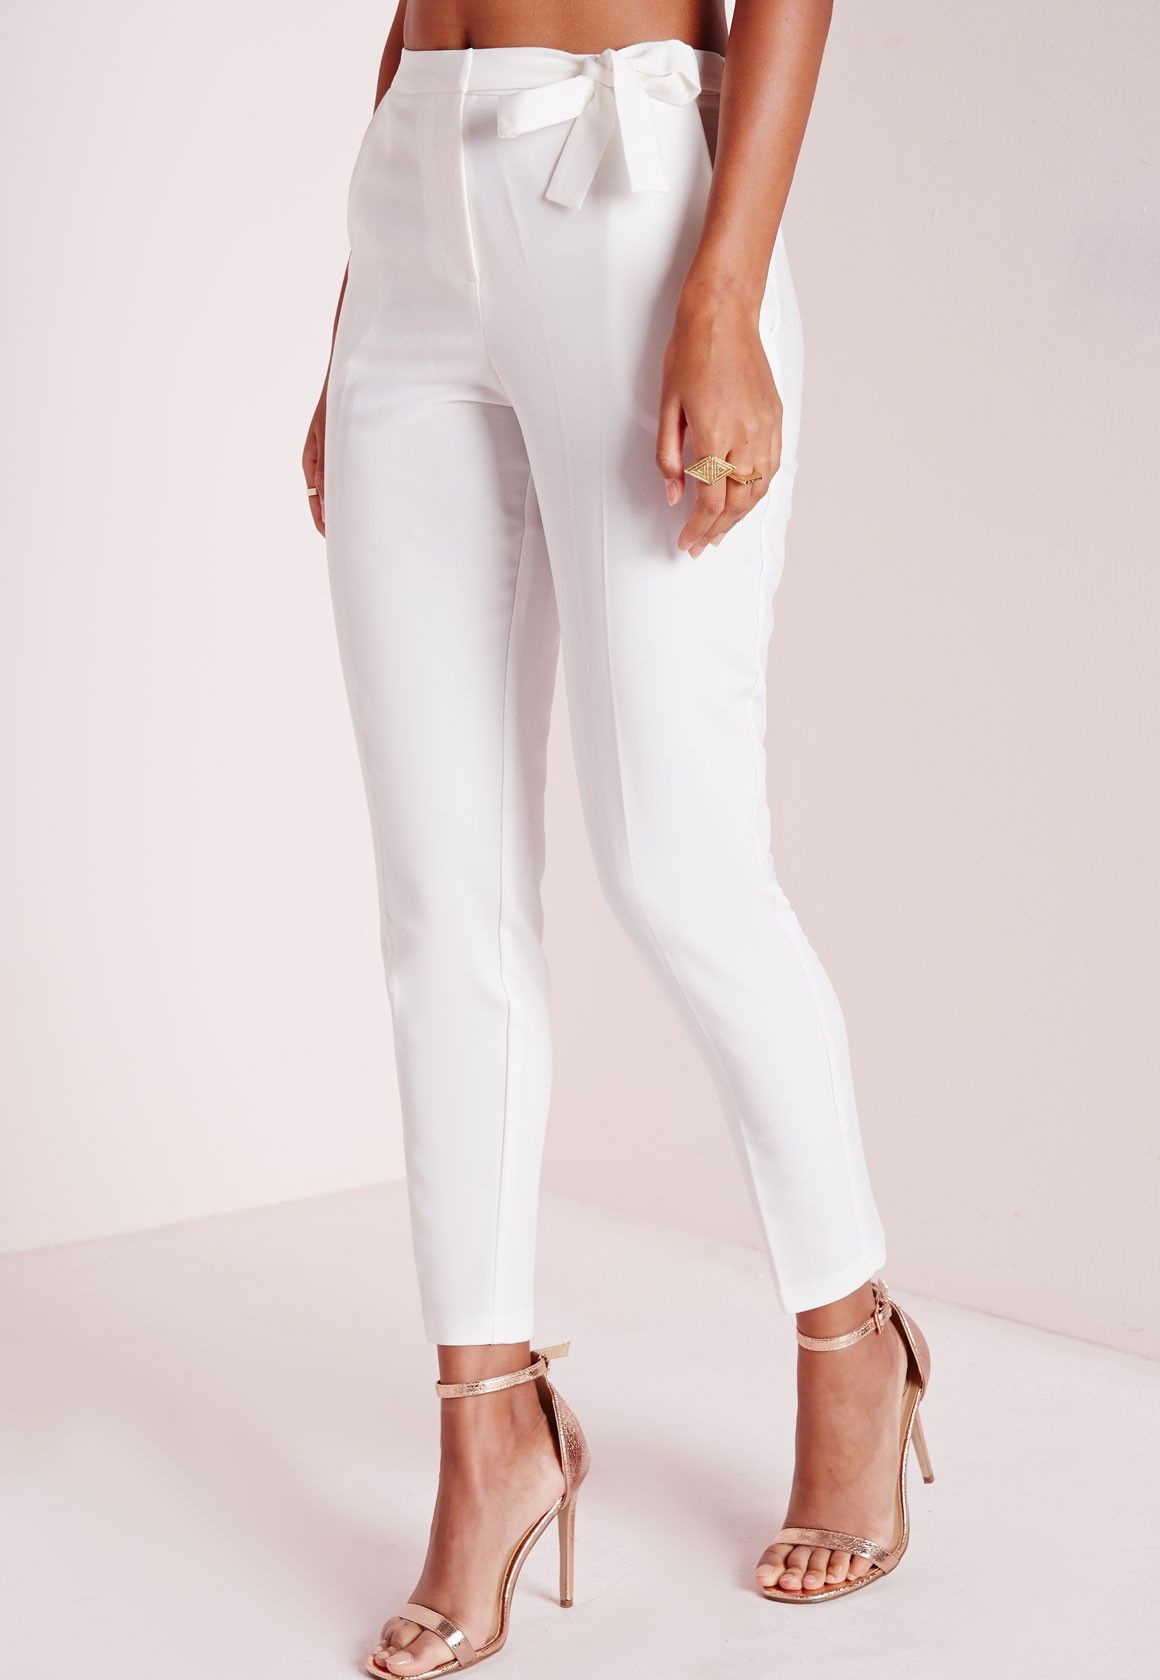 99d72d52 Tie Belt Crepe High Waist Pants White in 2019 | wedding outfit ideas ...